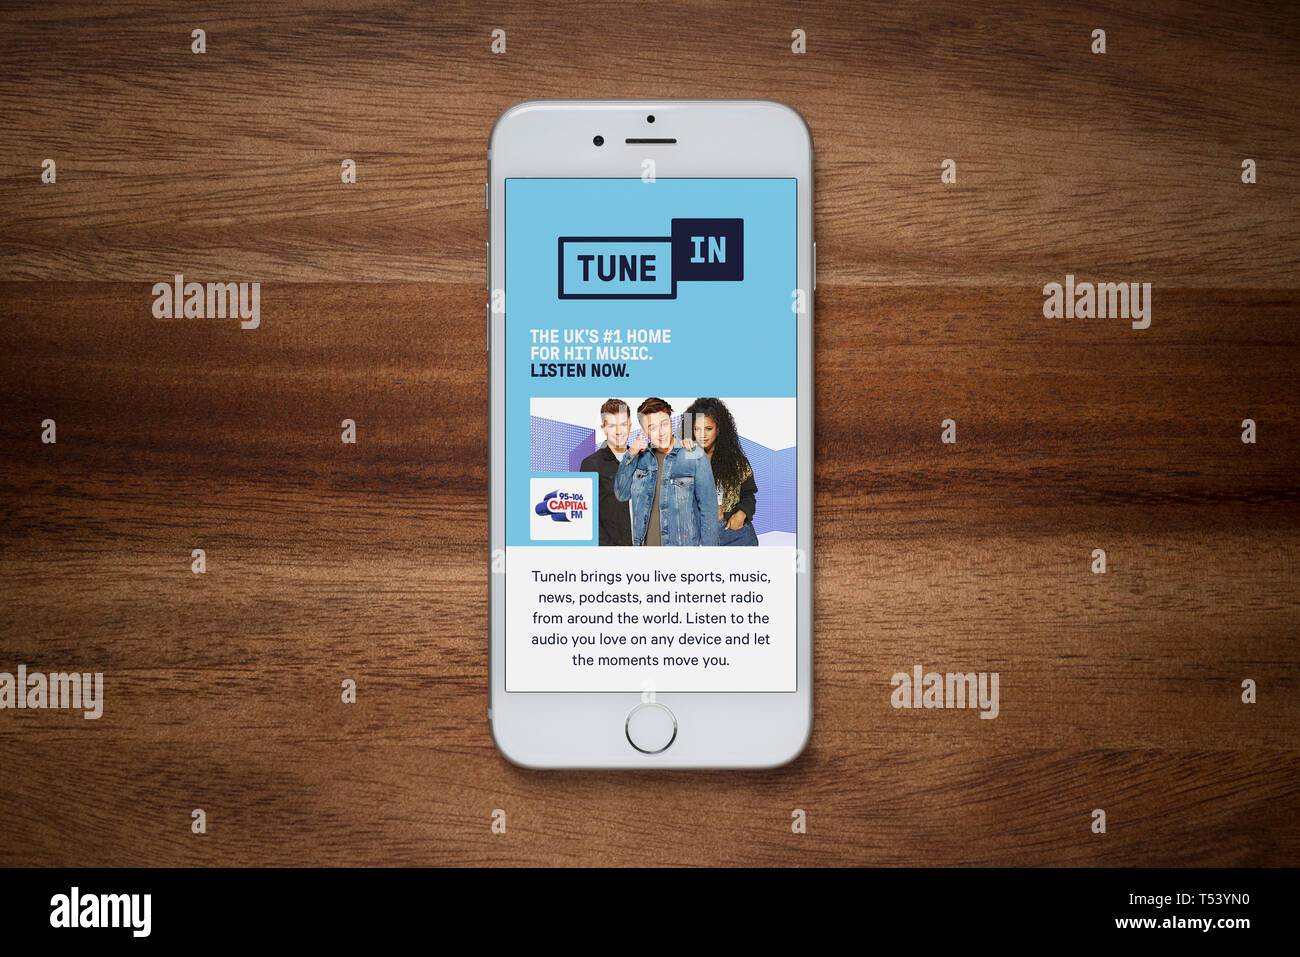 An iPhone showing the Tune In website rests on a plain wooden table (Editorial use only). - Stock Image